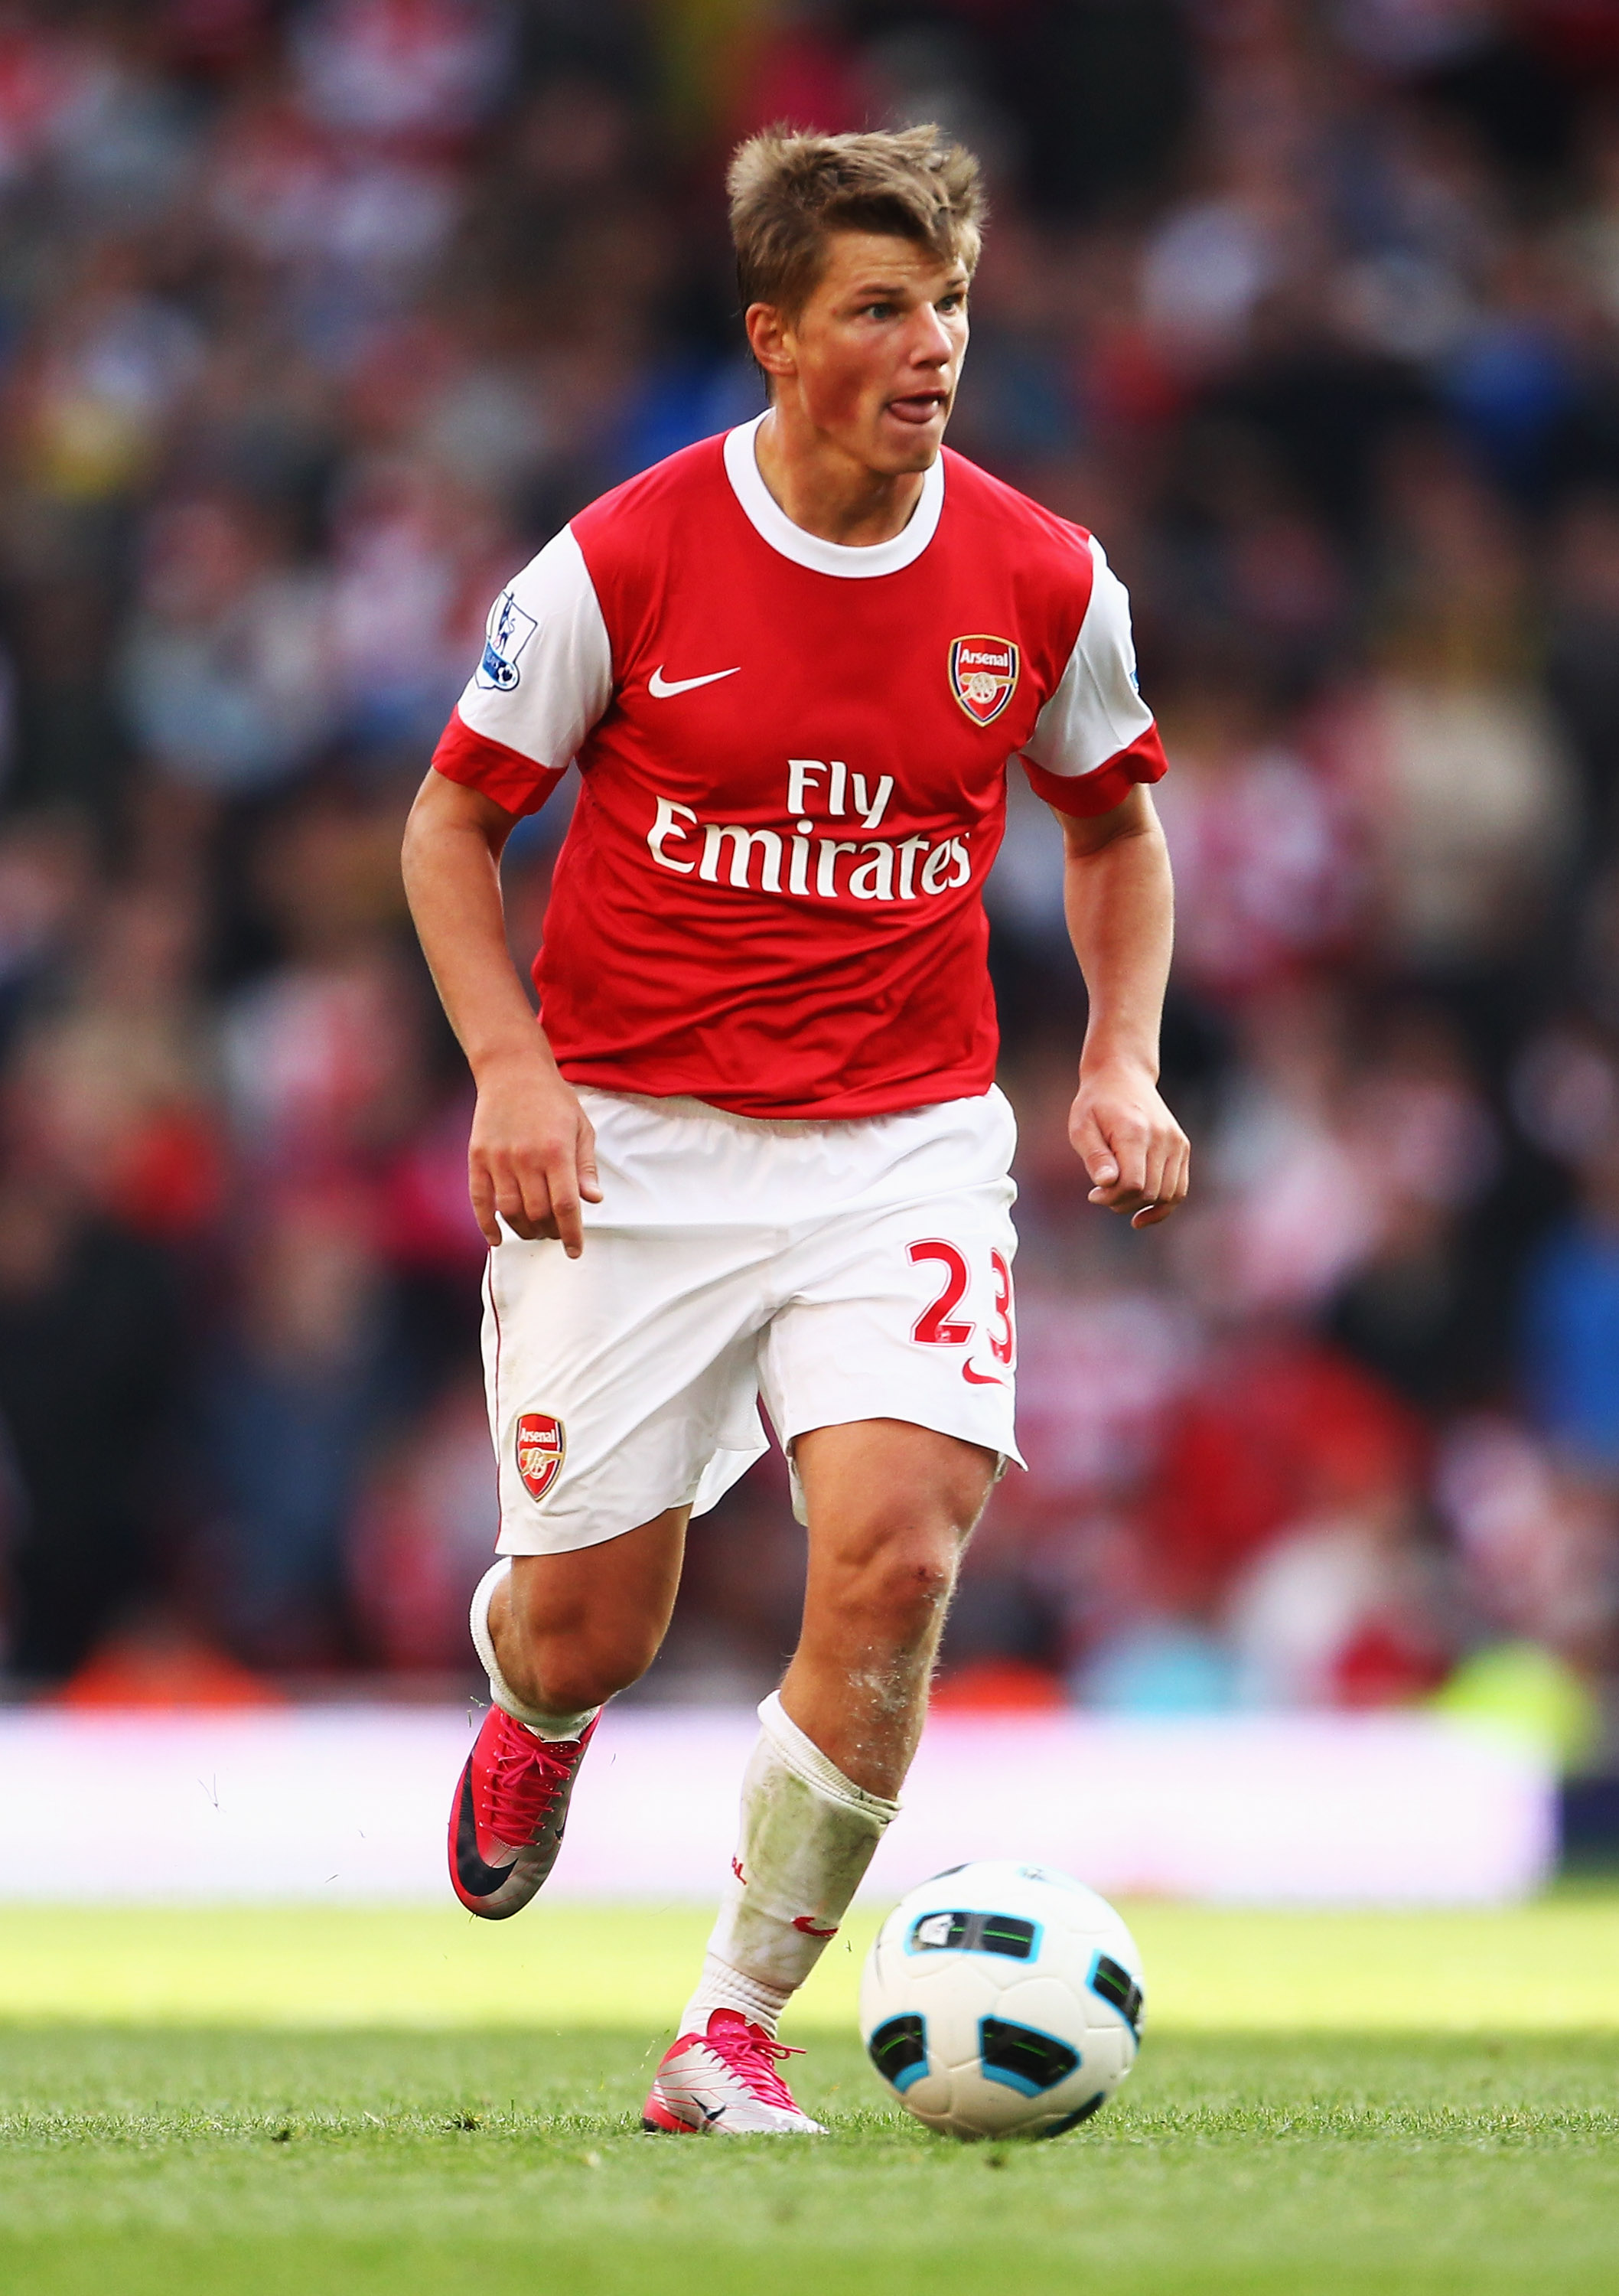 LONDON, ENGLAND - SEPTEMBER 25:  Andrey Arshavin  of Arsenal in action during the Barclays Premier League match between Arsenal and West Bromwich Albion at the Emirates Stadium on September 25, 2010 in London, England.  (Photo by Julian Finney/Getty Image